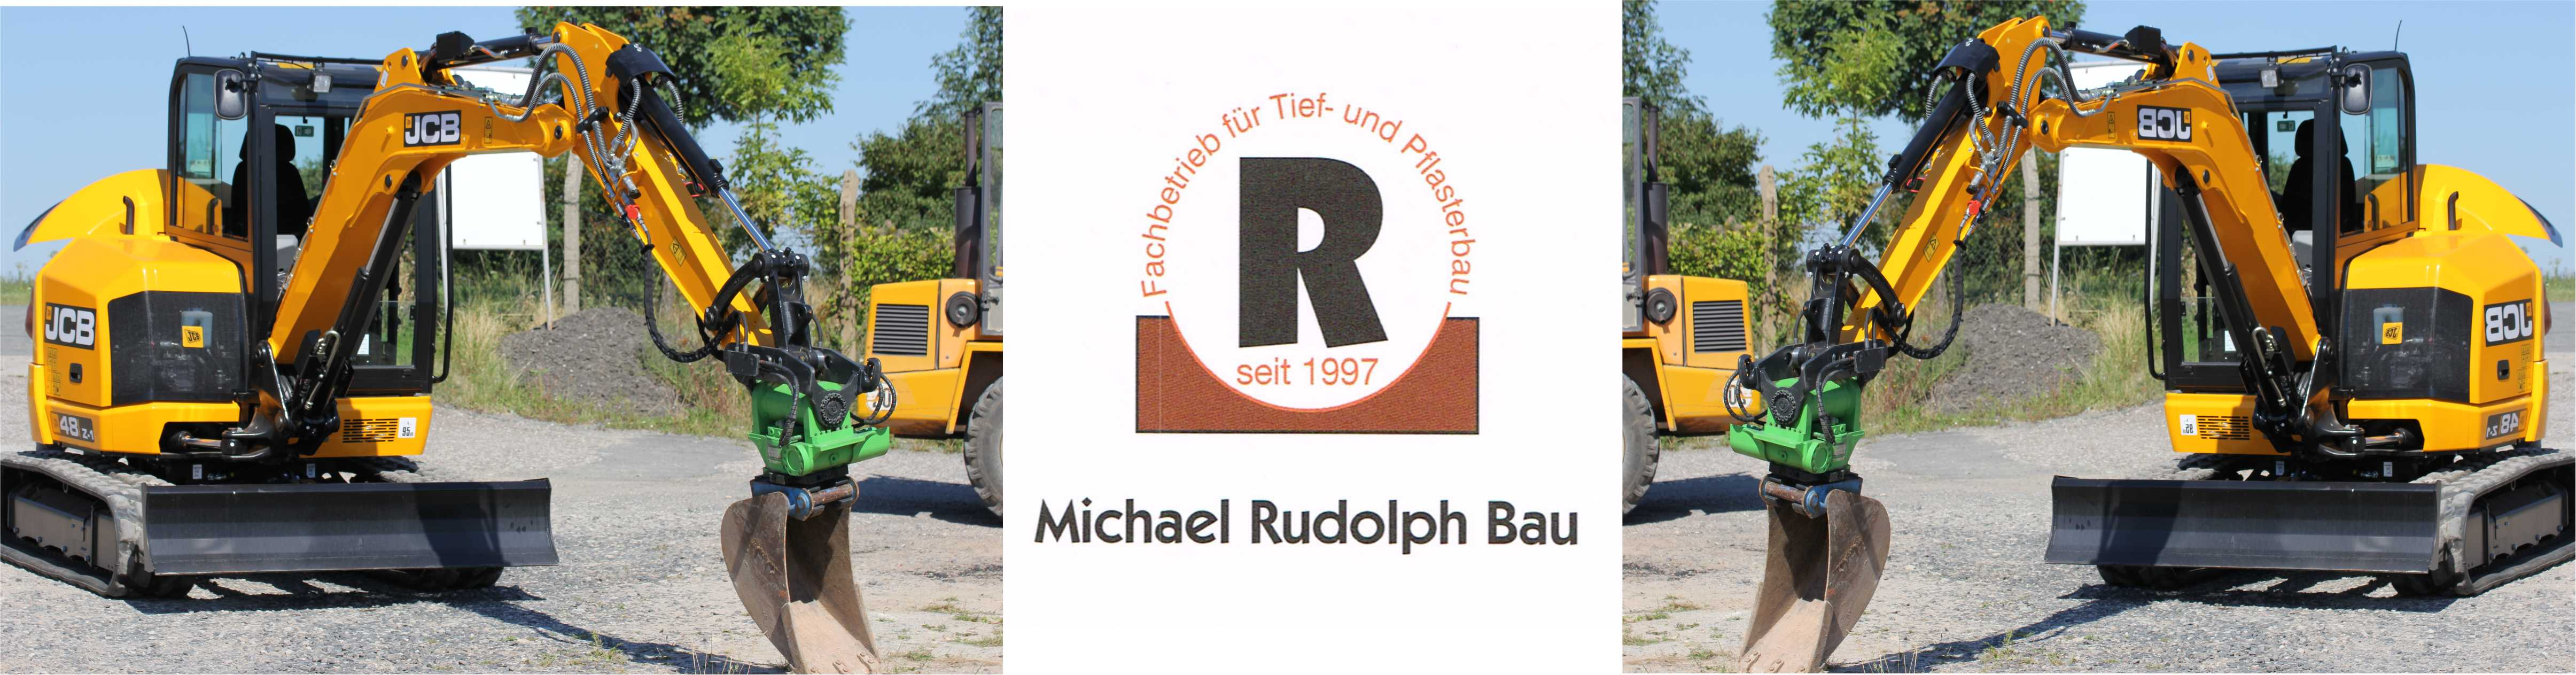 Michael Rudolph Bau Bad Kösen